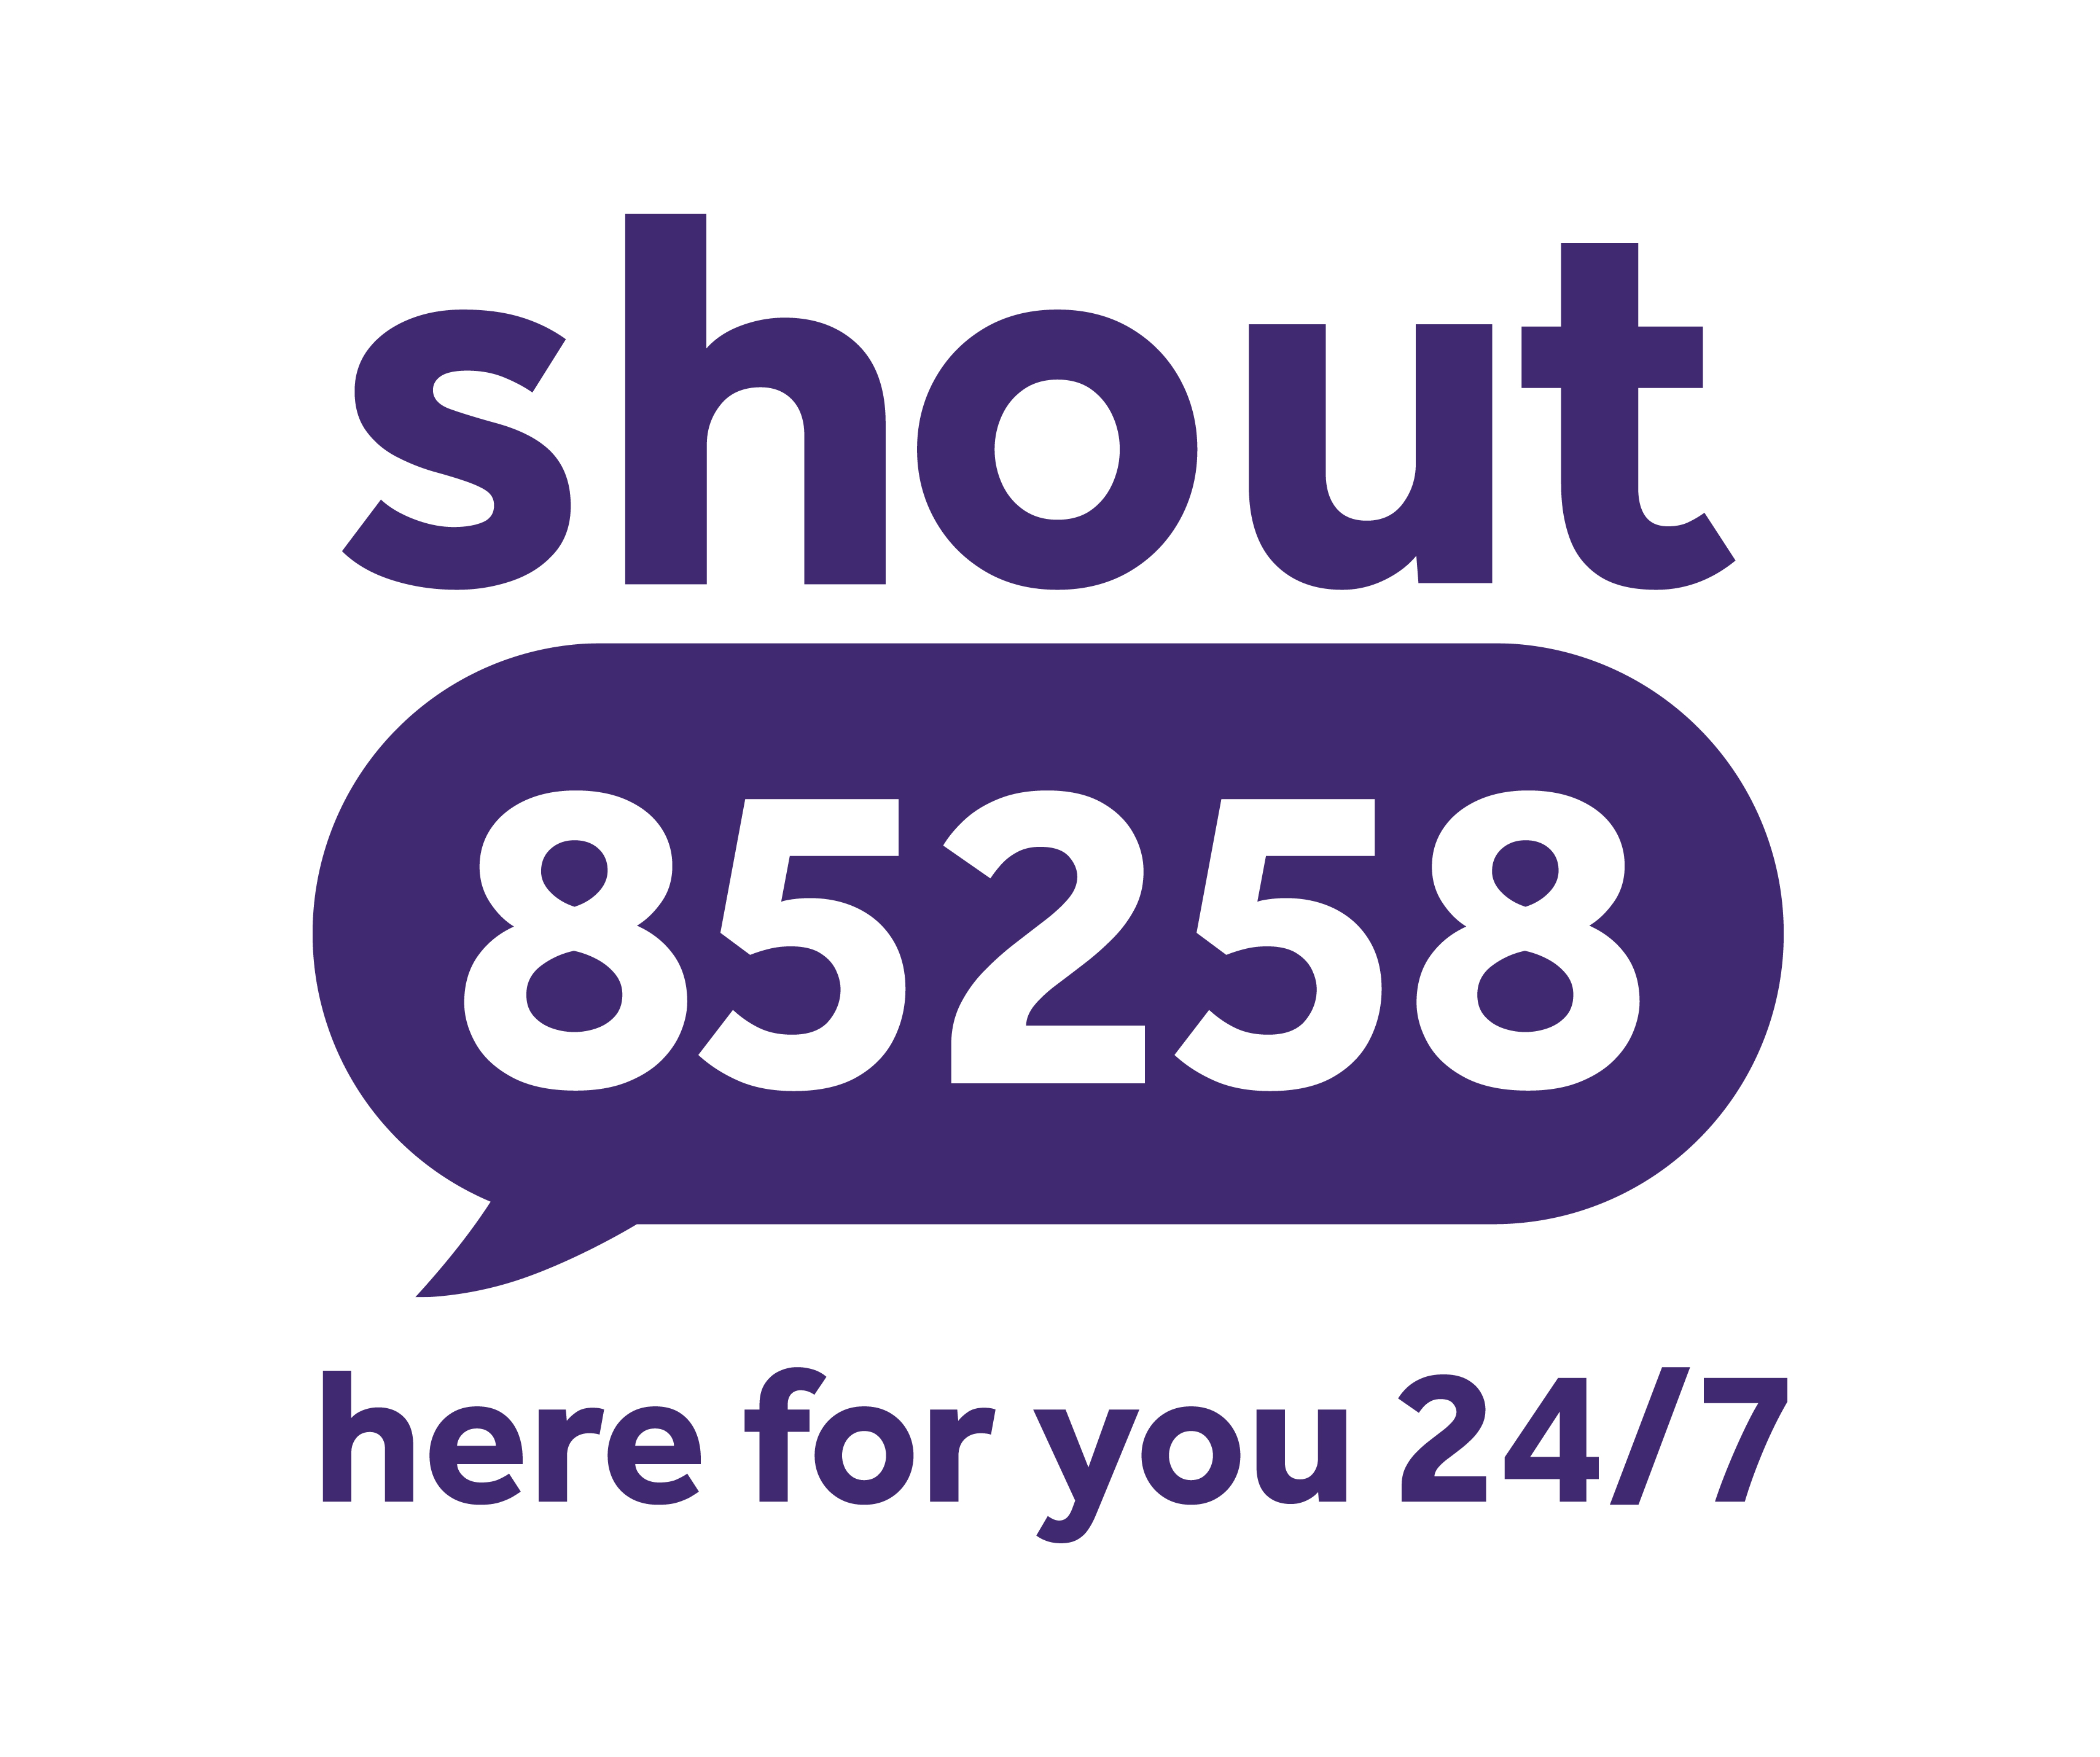 Share the number   Shout 85258